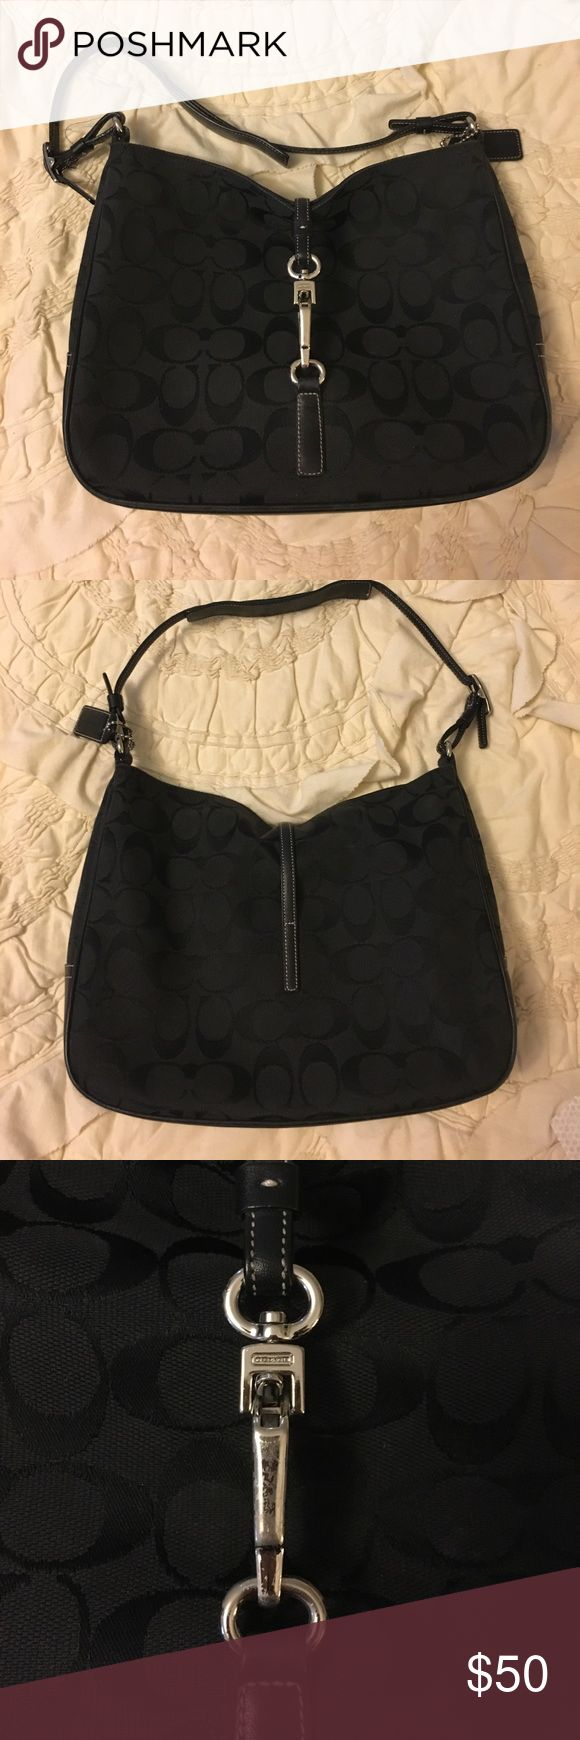 Black Coach Purse Previously loved and very well maintained black Coach  purse. Silver metal clasp and completely authentic. Coach Bags Shoulder Bags